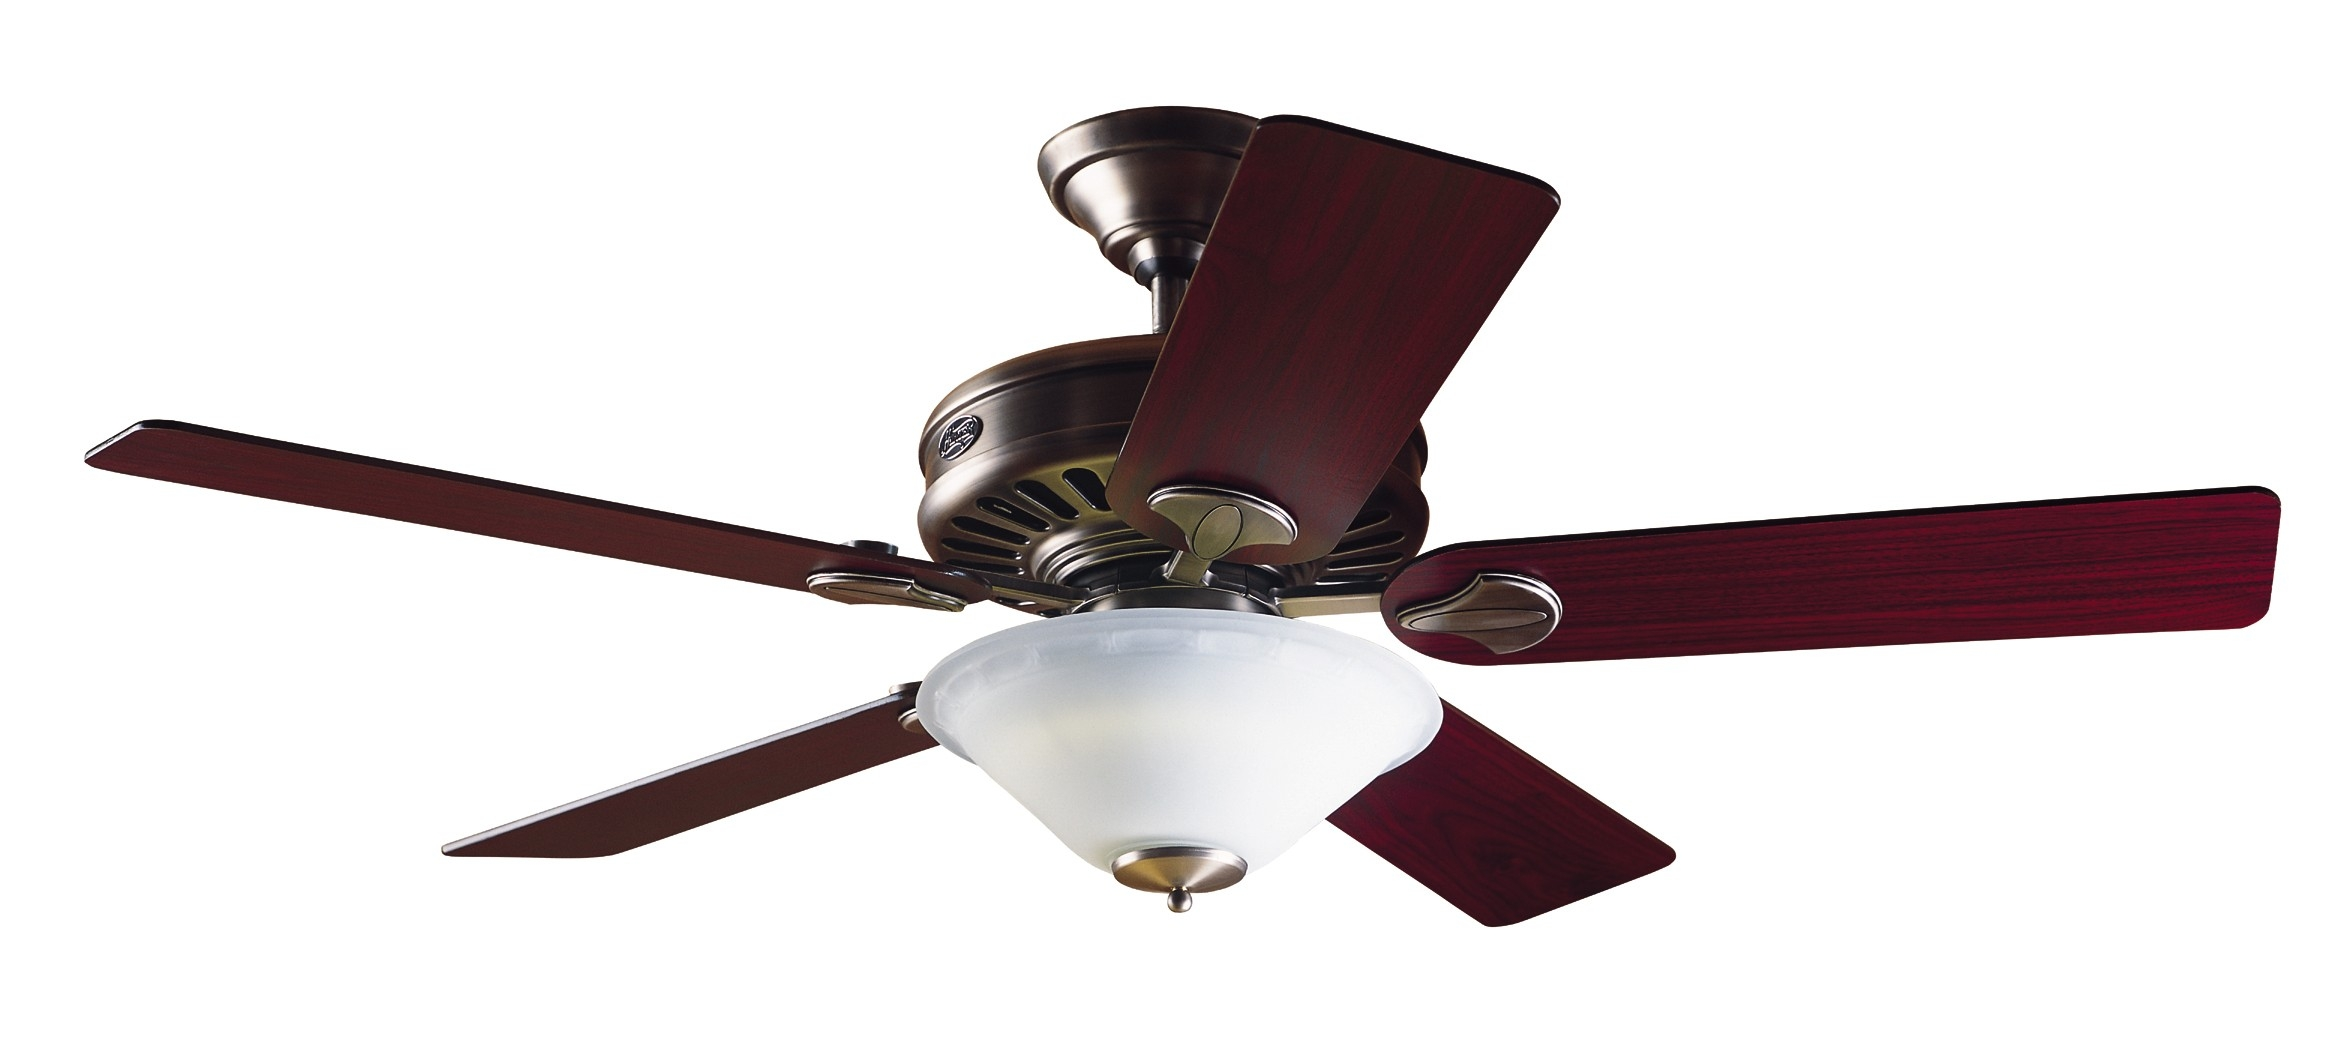 Ceiling fans fans cooling energy efficient energy star energy star saving money and energy can be a breeze with your ceiling fan aloadofball Images